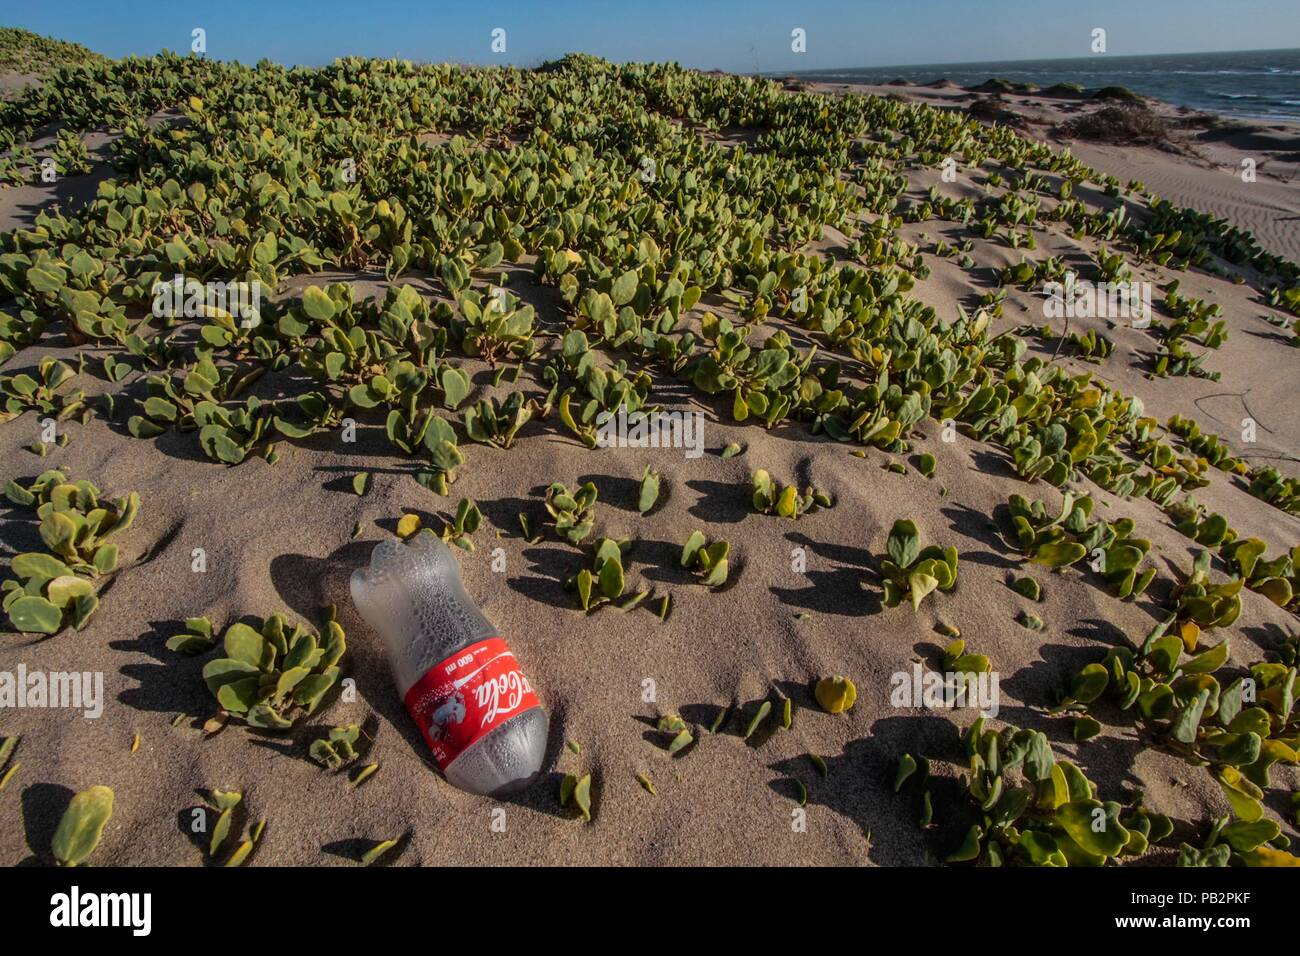 Empty plastic bottle of Coca Cola brand gas, cause of pollution and environmental impact. Sand dunes at Imalaya Beach in the vicinity of Kino Bay. Stock Photo